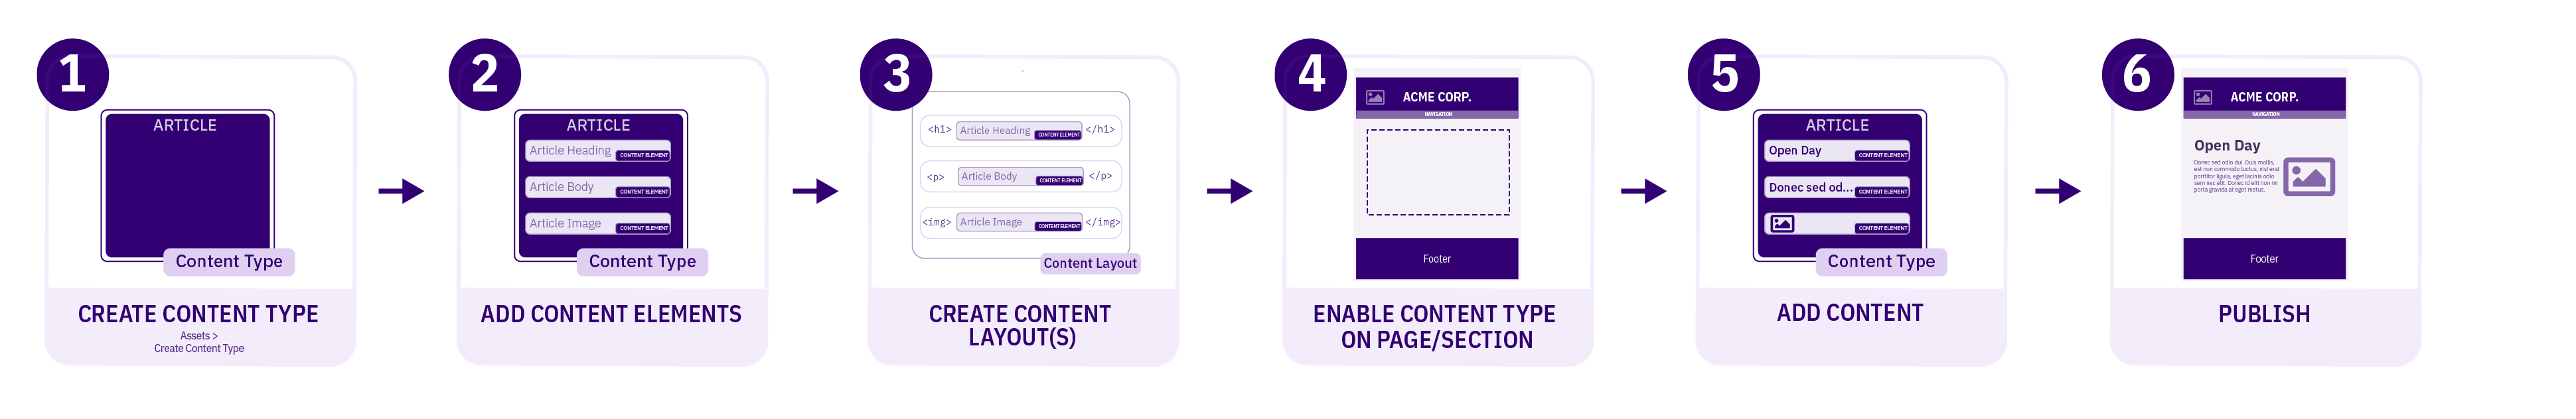 Diagram detailing the process when creating a Content Type